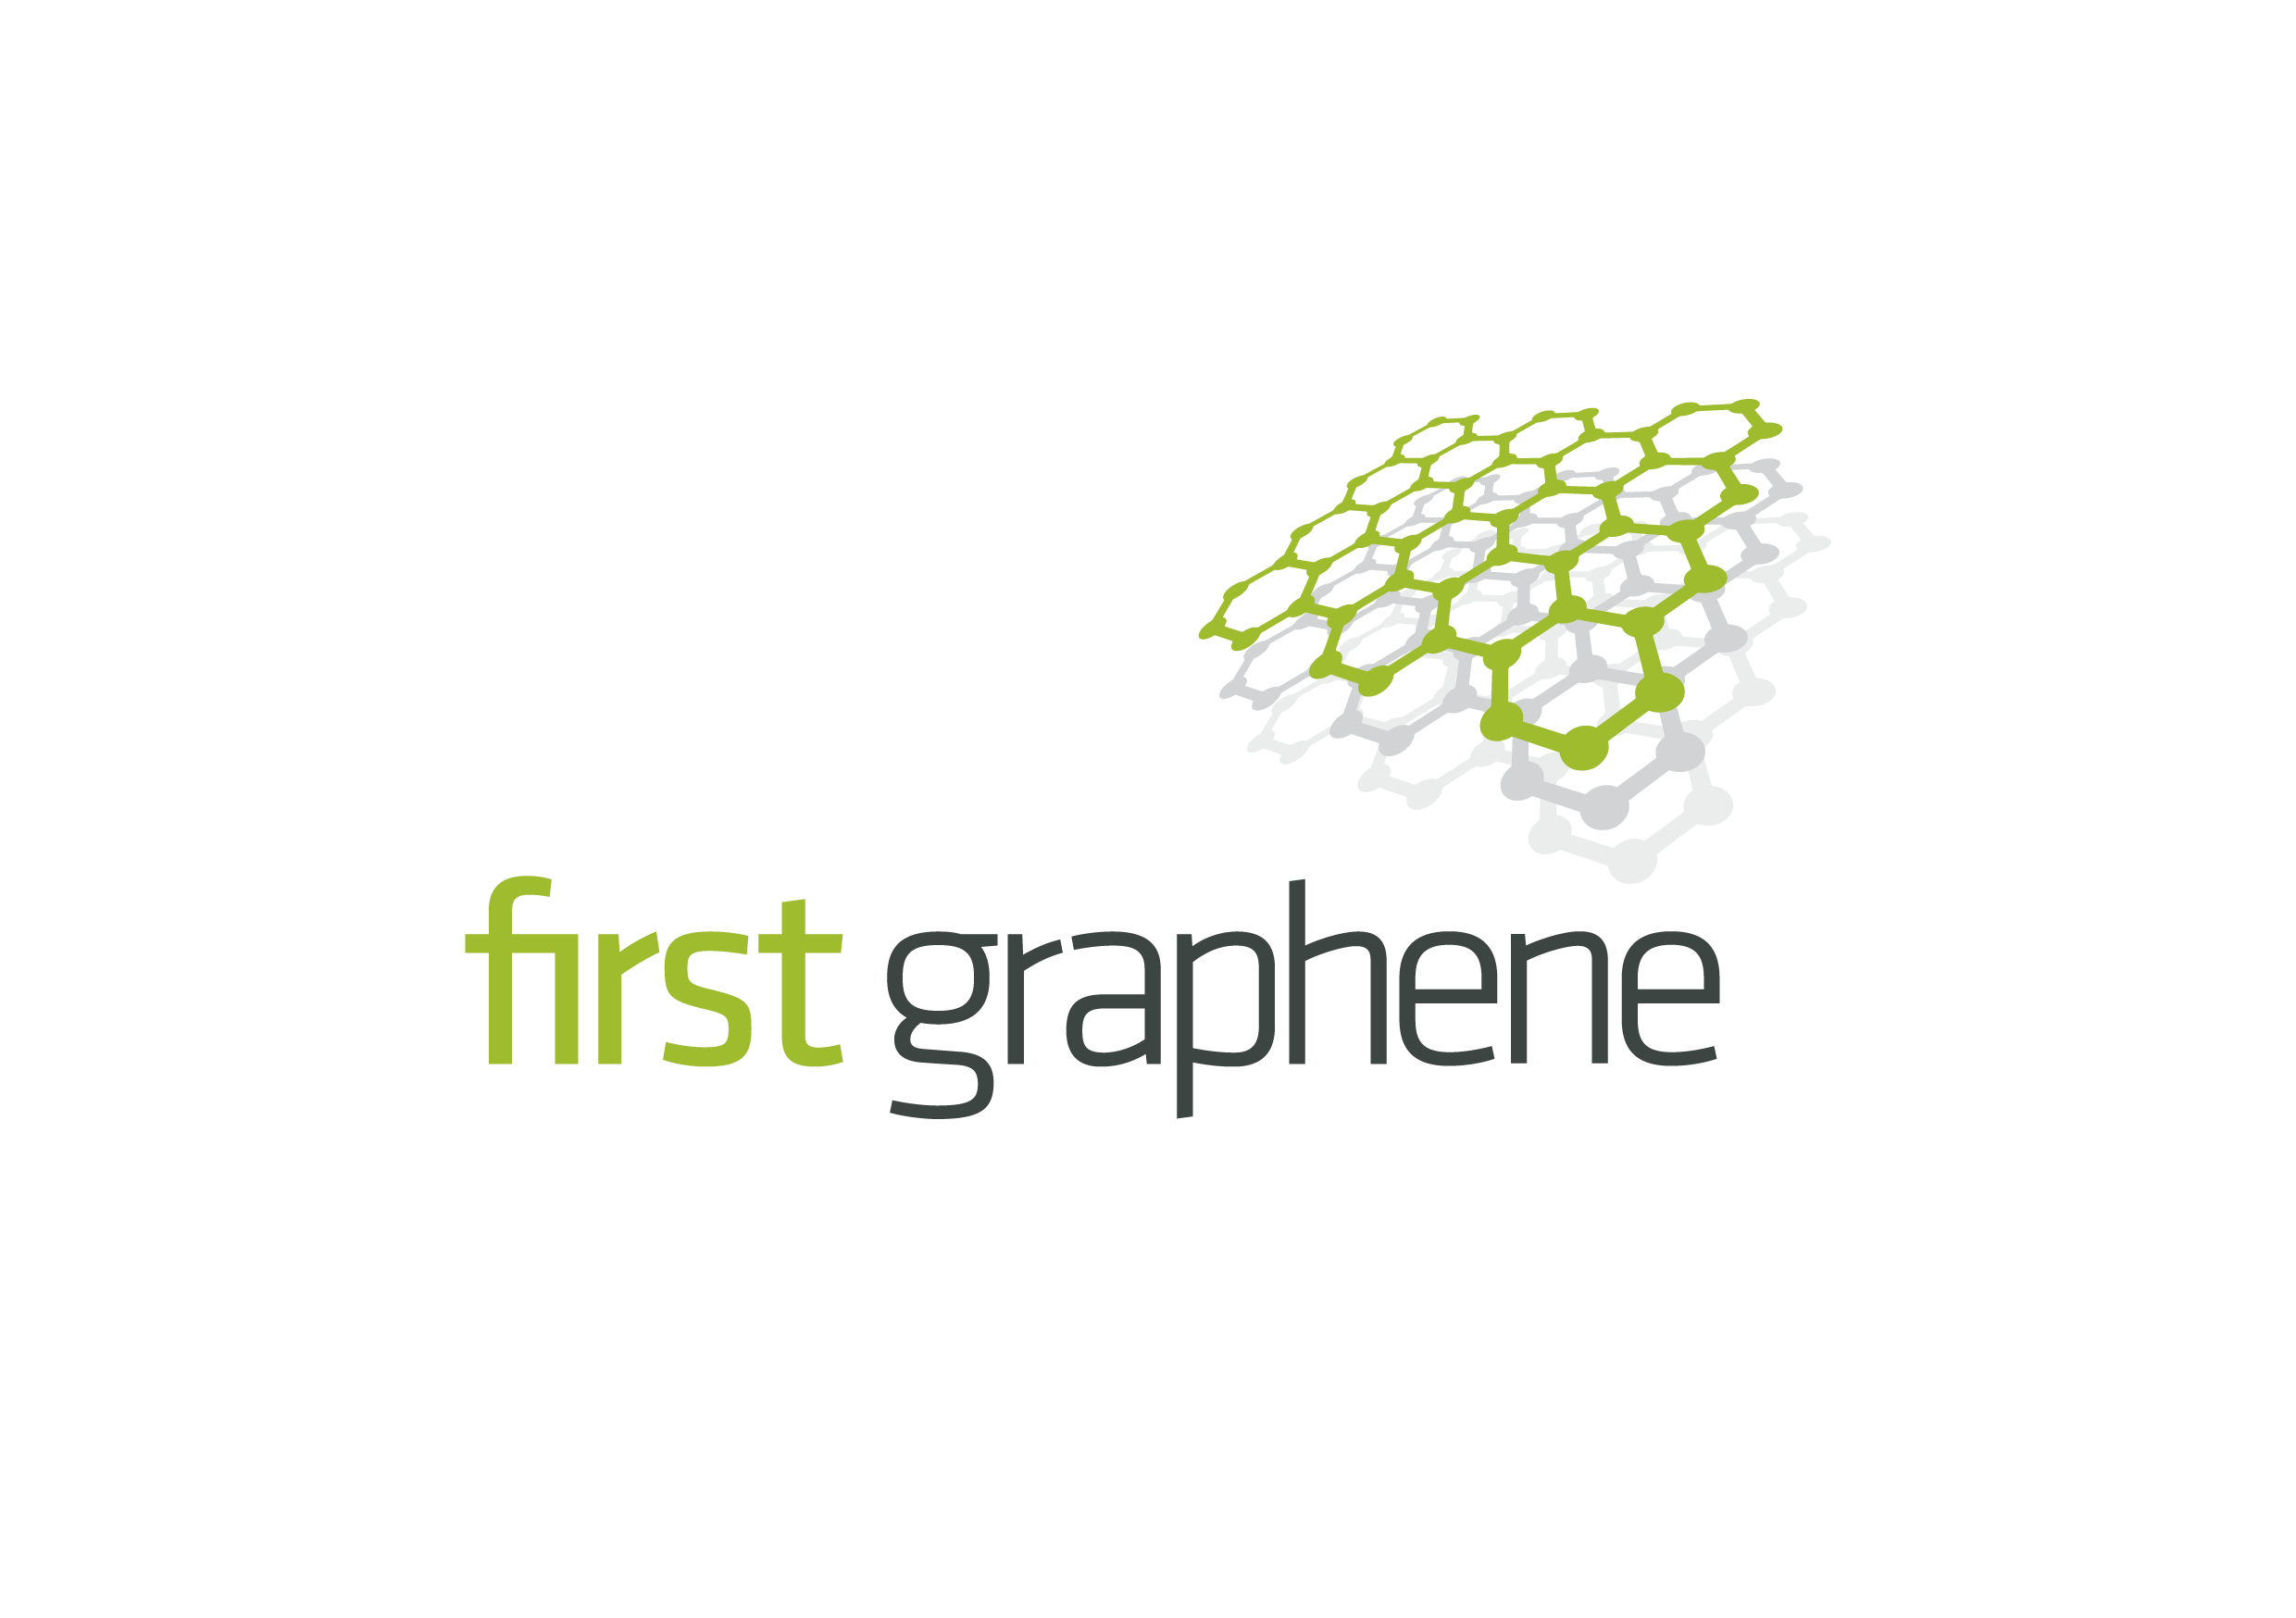 First graphene logo